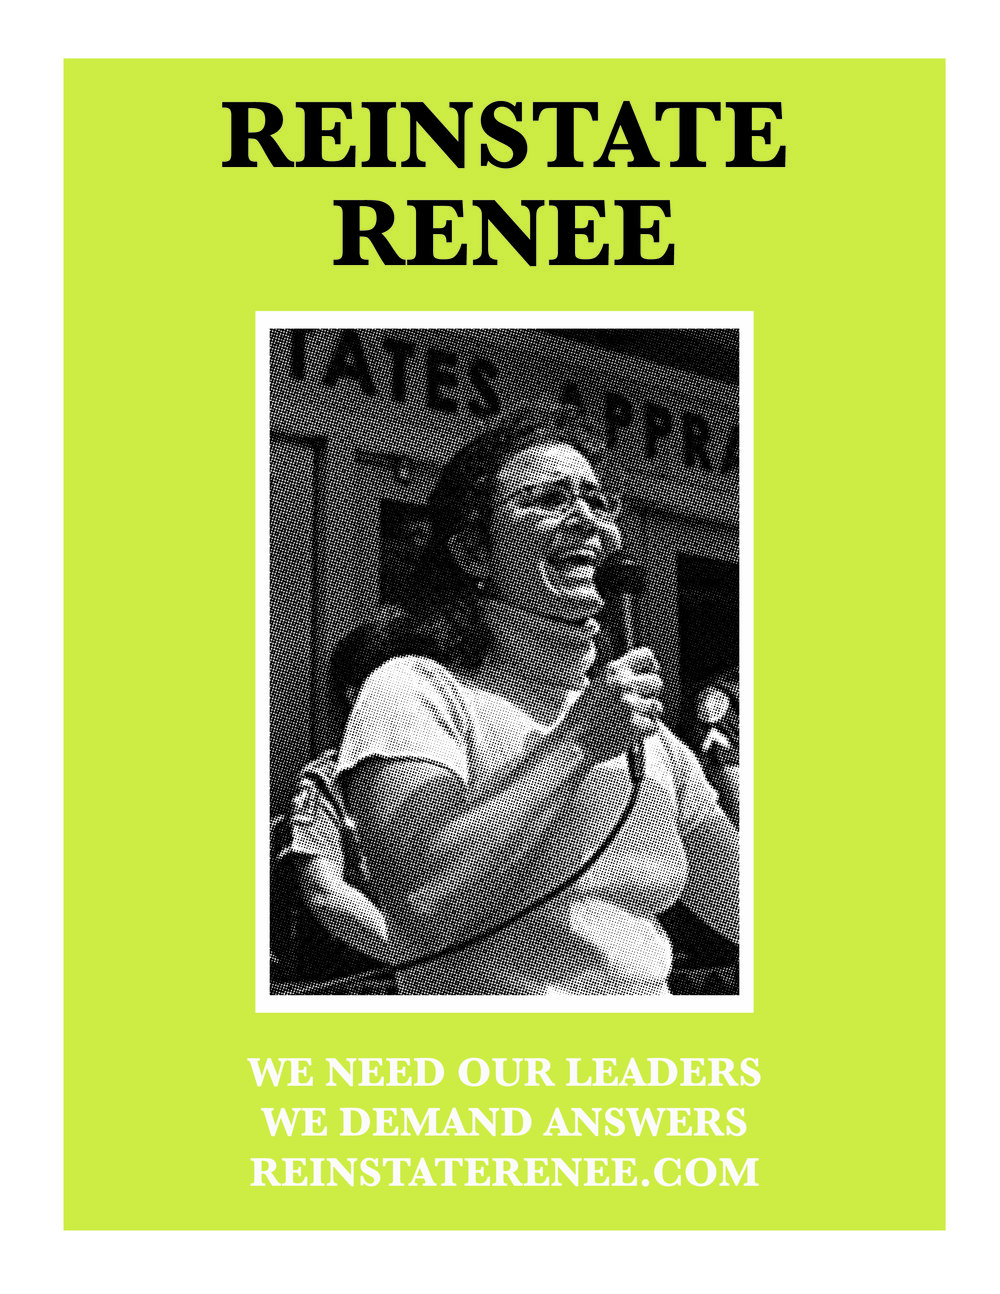 reinstate renee flyer-02.jpg